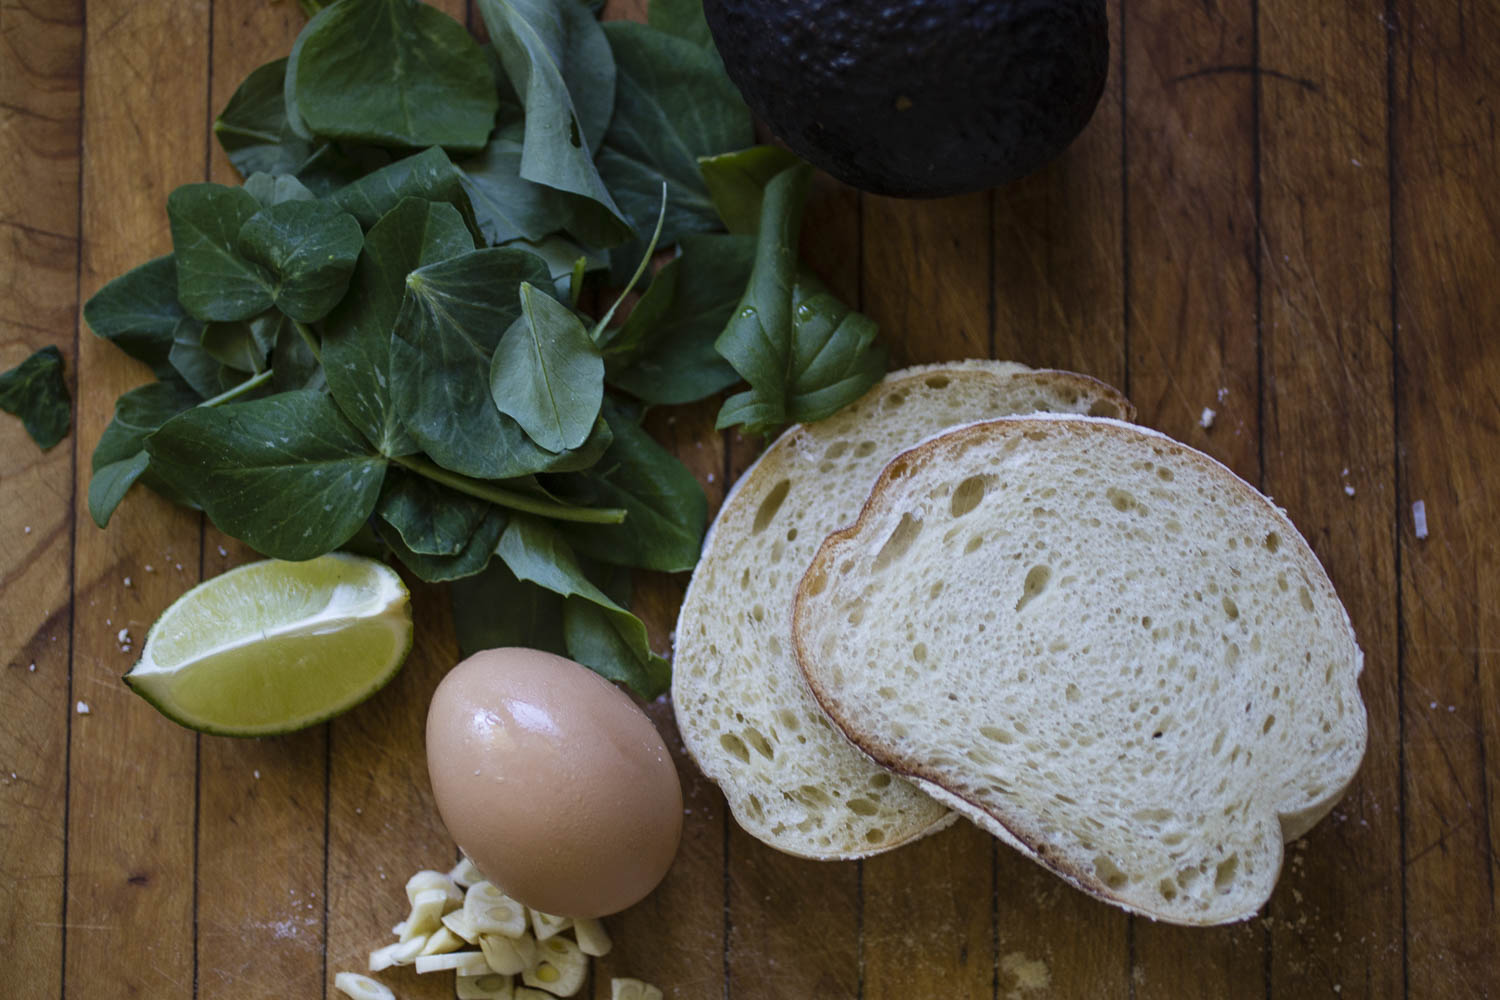 ingredients for pea shoots and avocado breakfast sandwich